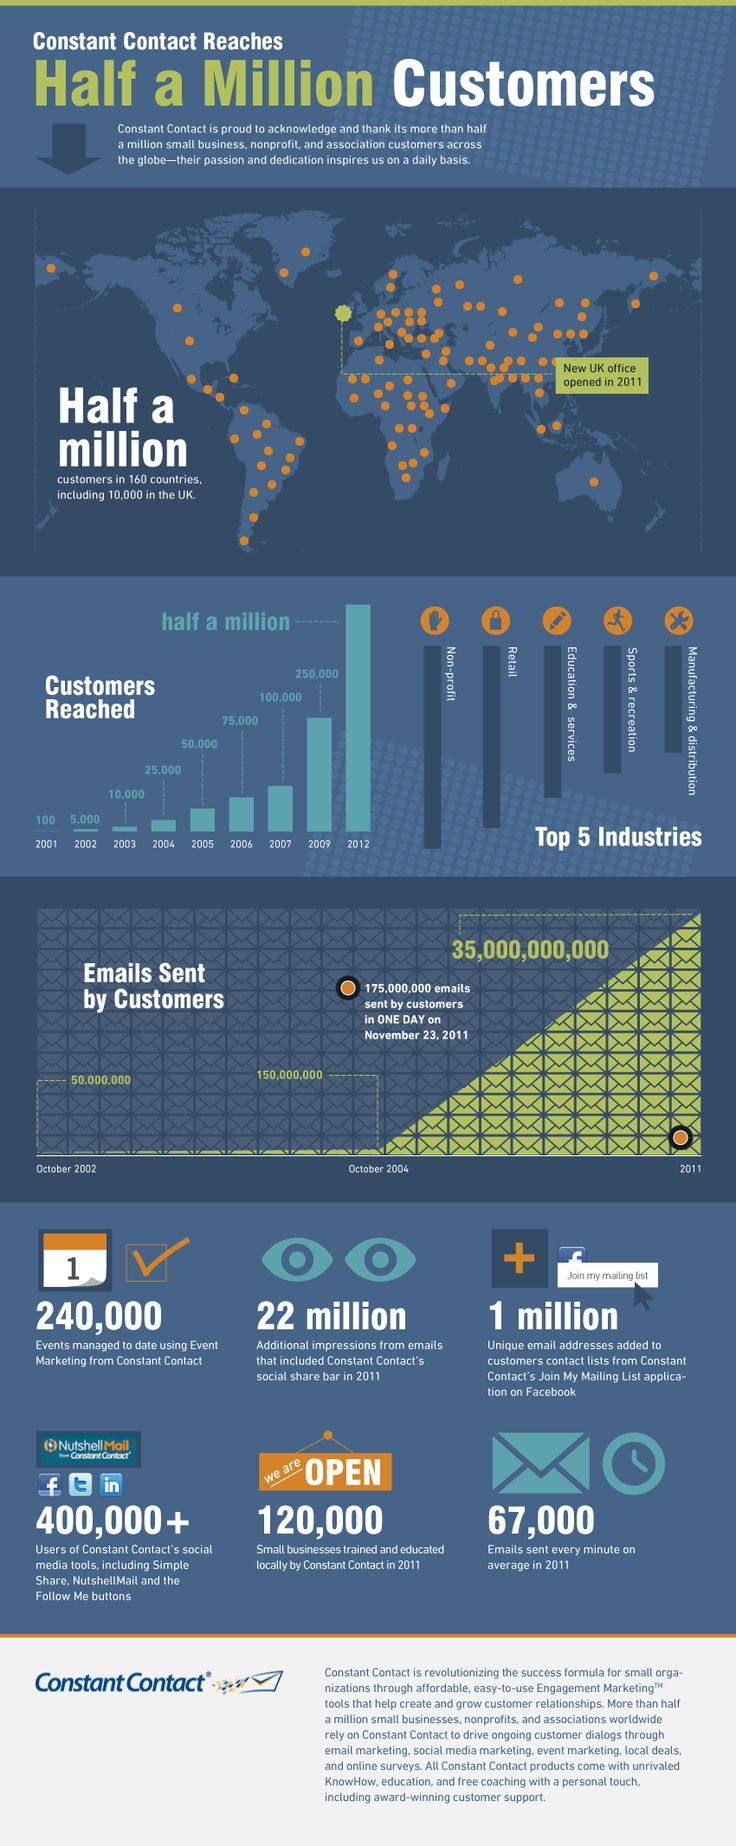 Half a million customers: 500K Custom, Ecommerce Email, Email Marketing, Church Email, Customers Infographic, Contact Blog, Constant Contact, Marketing Infographic, Contact Reach